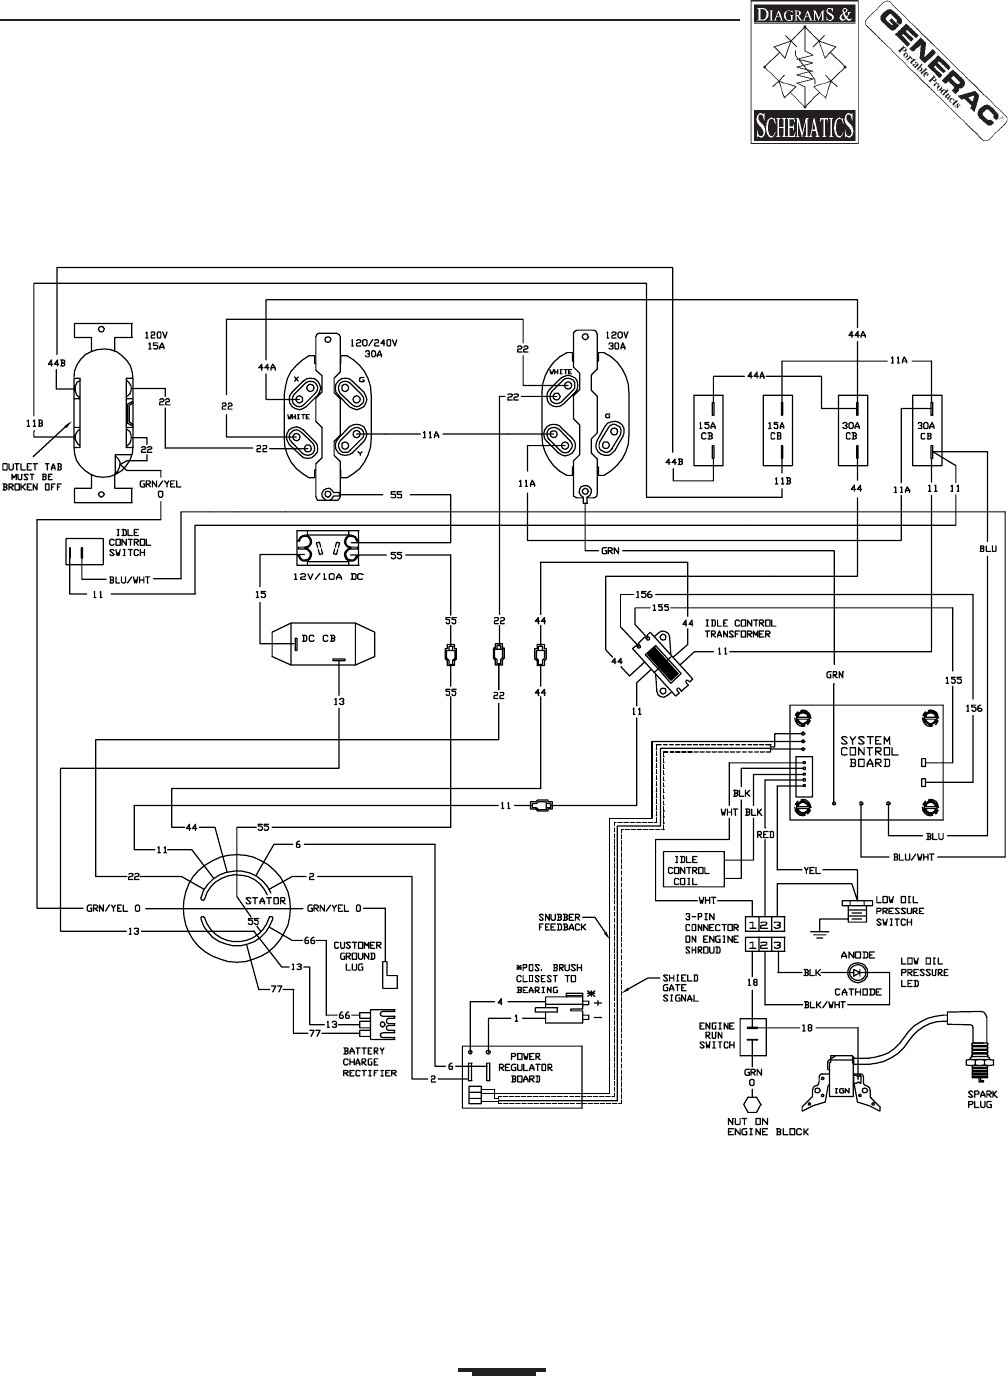 38c29e63 4610 4d0c 9aae d948c0ee2240 bgf?resize\\\\\\\\\\\\\=665%2C908 goulds pumps control panel wiring diagram 66 ford bronco wiring wiring diagrams 3 phase irrigation pump panel at eliteediting.co